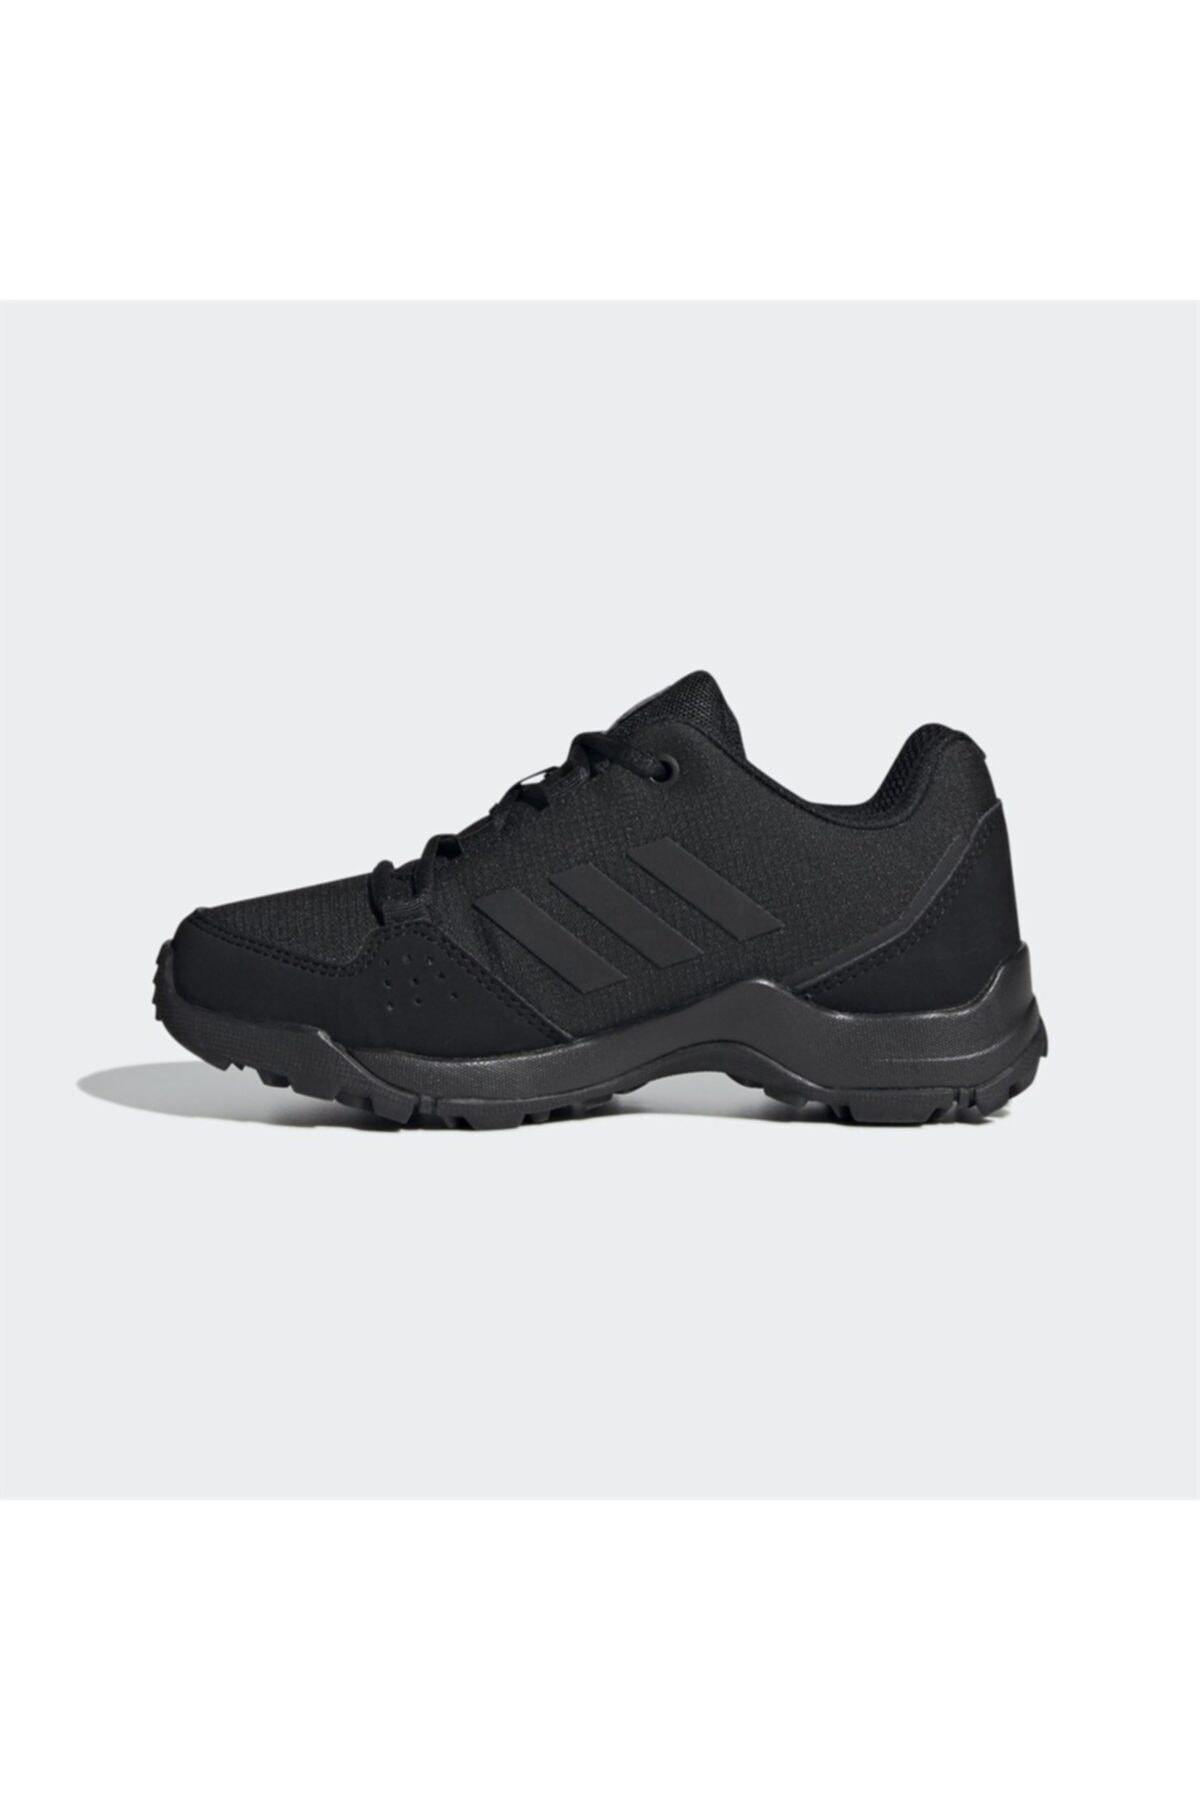 adidas Terrex Hyperhiker Low Hiking Outdoor Ayakkabı 2